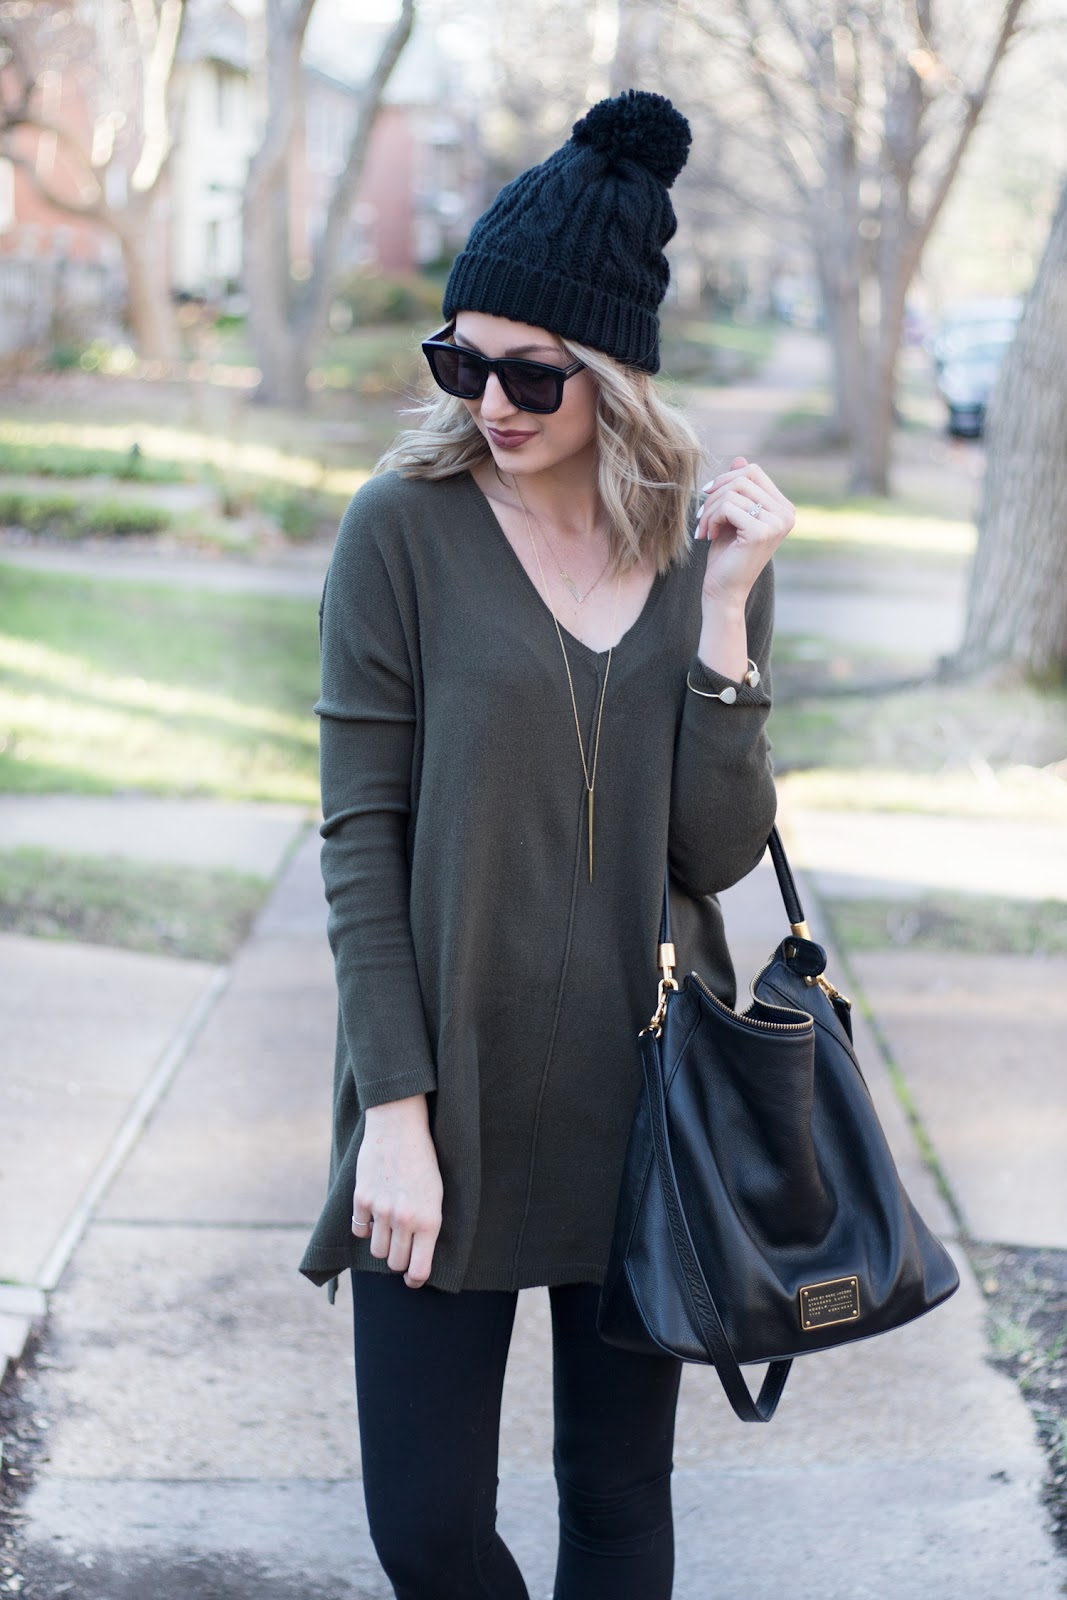 Tunic sweater + leggings